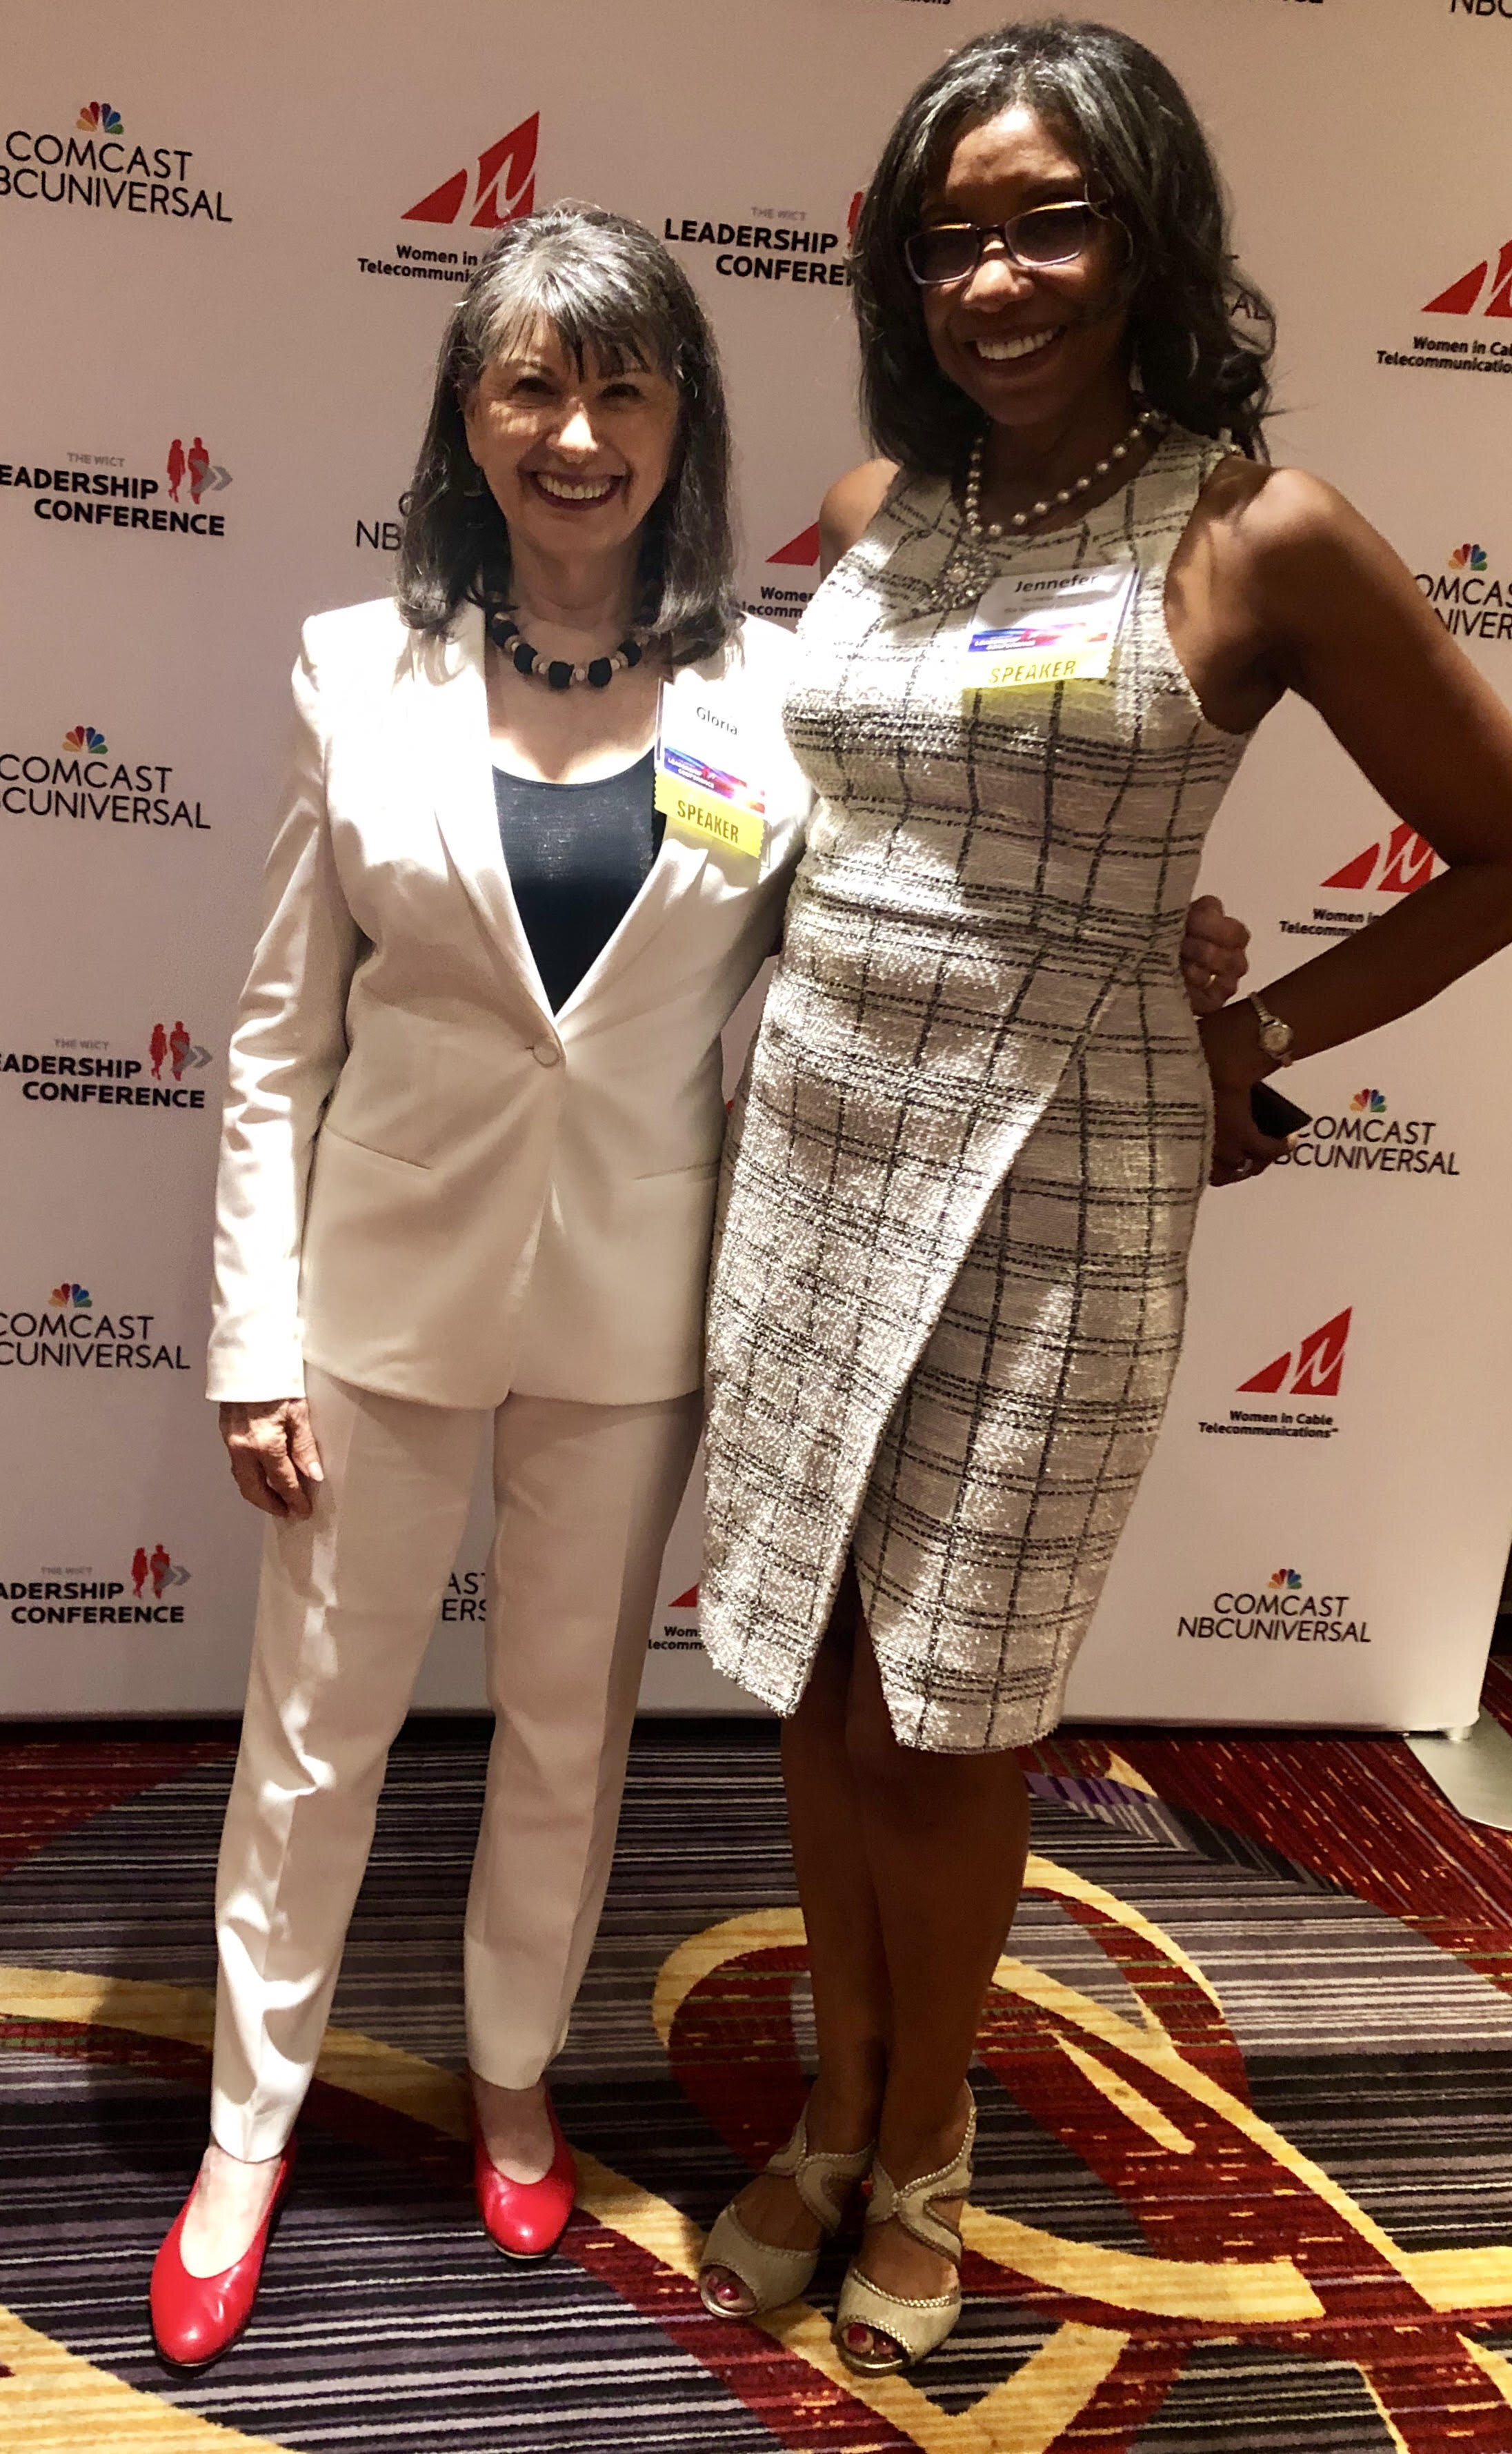 At the WICT step and repeat with Boreland Group President Jennefer Witter.